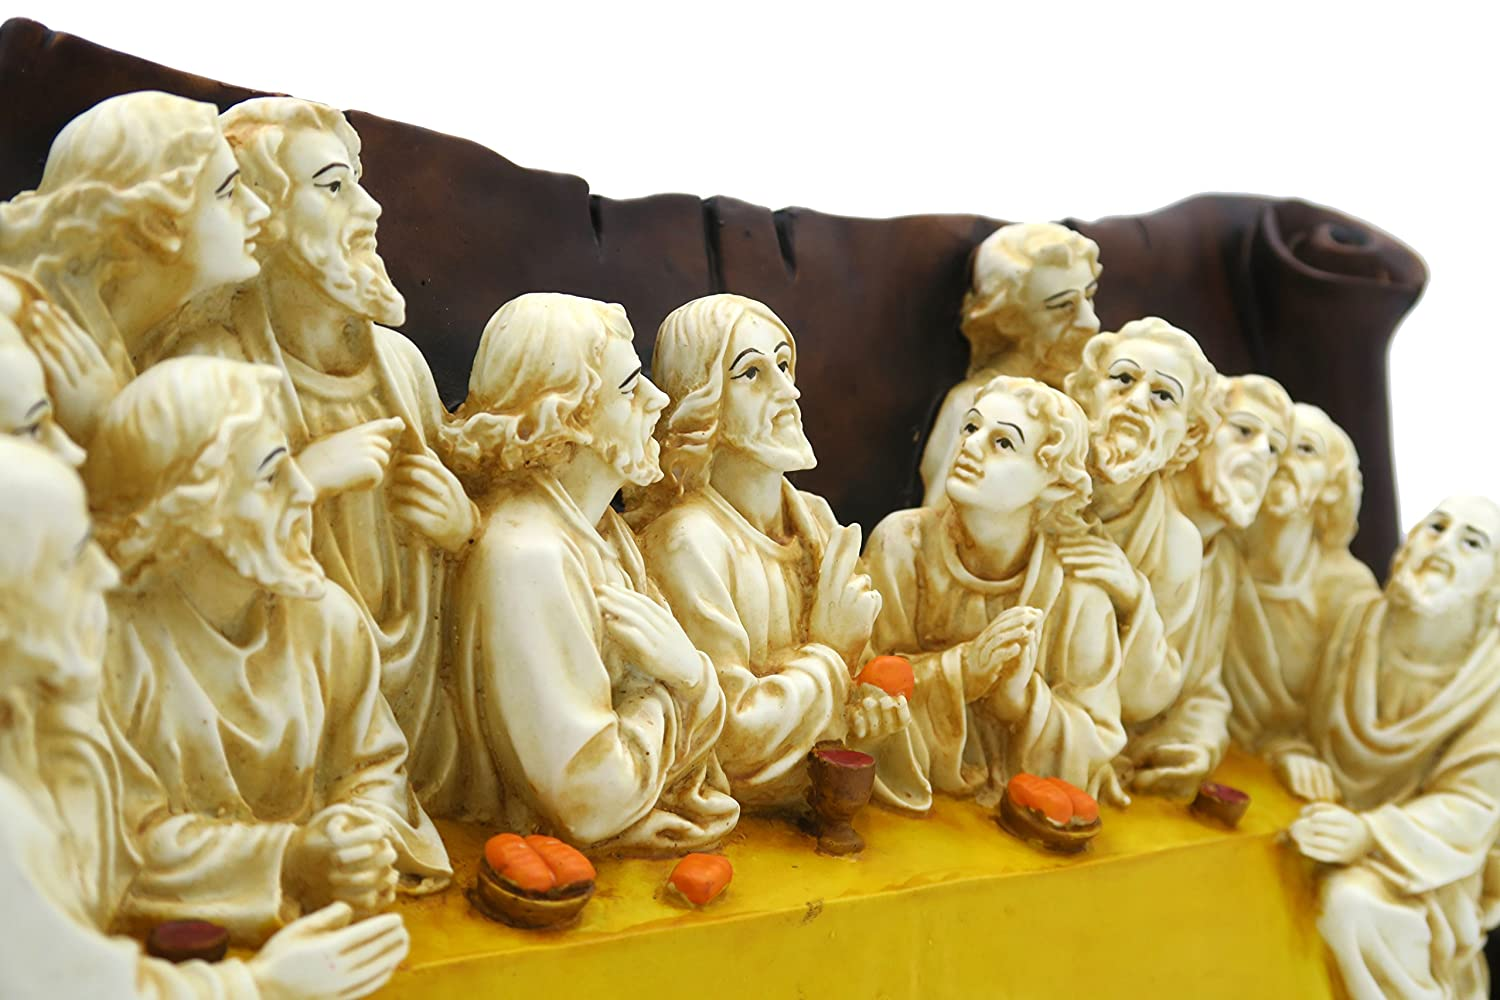 Buy The Last Supper Wall Hanging - Handmade in Polyresin Online at ...